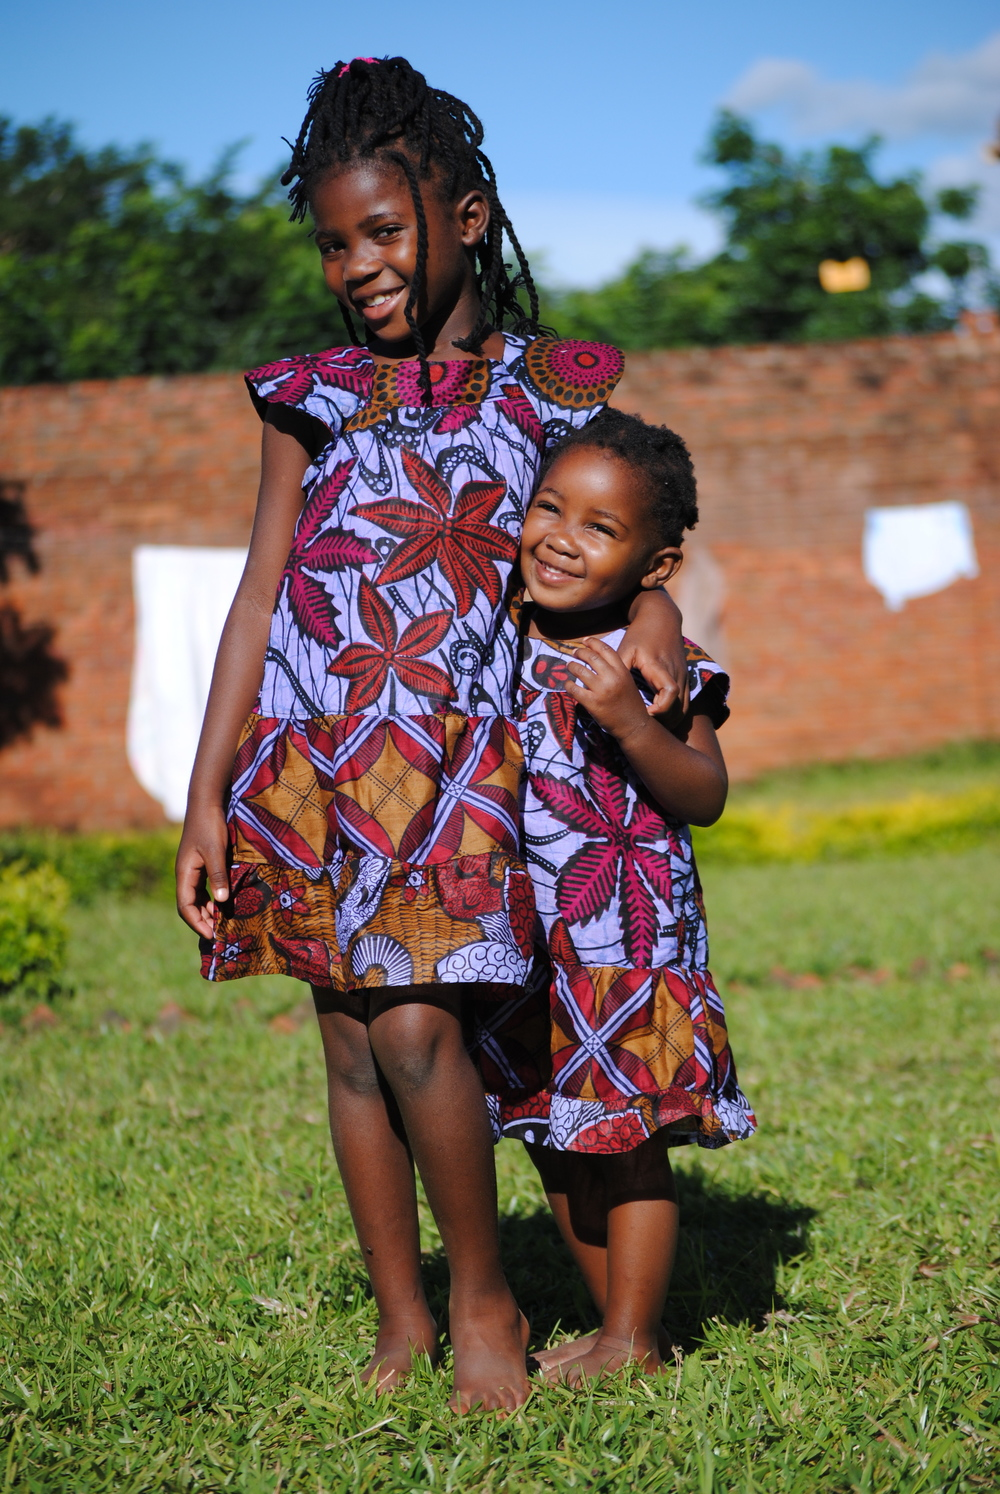 Tatenda and Praise are two Malawian girls who live close to Kasungu. They were kind enough to model our dresses for us!